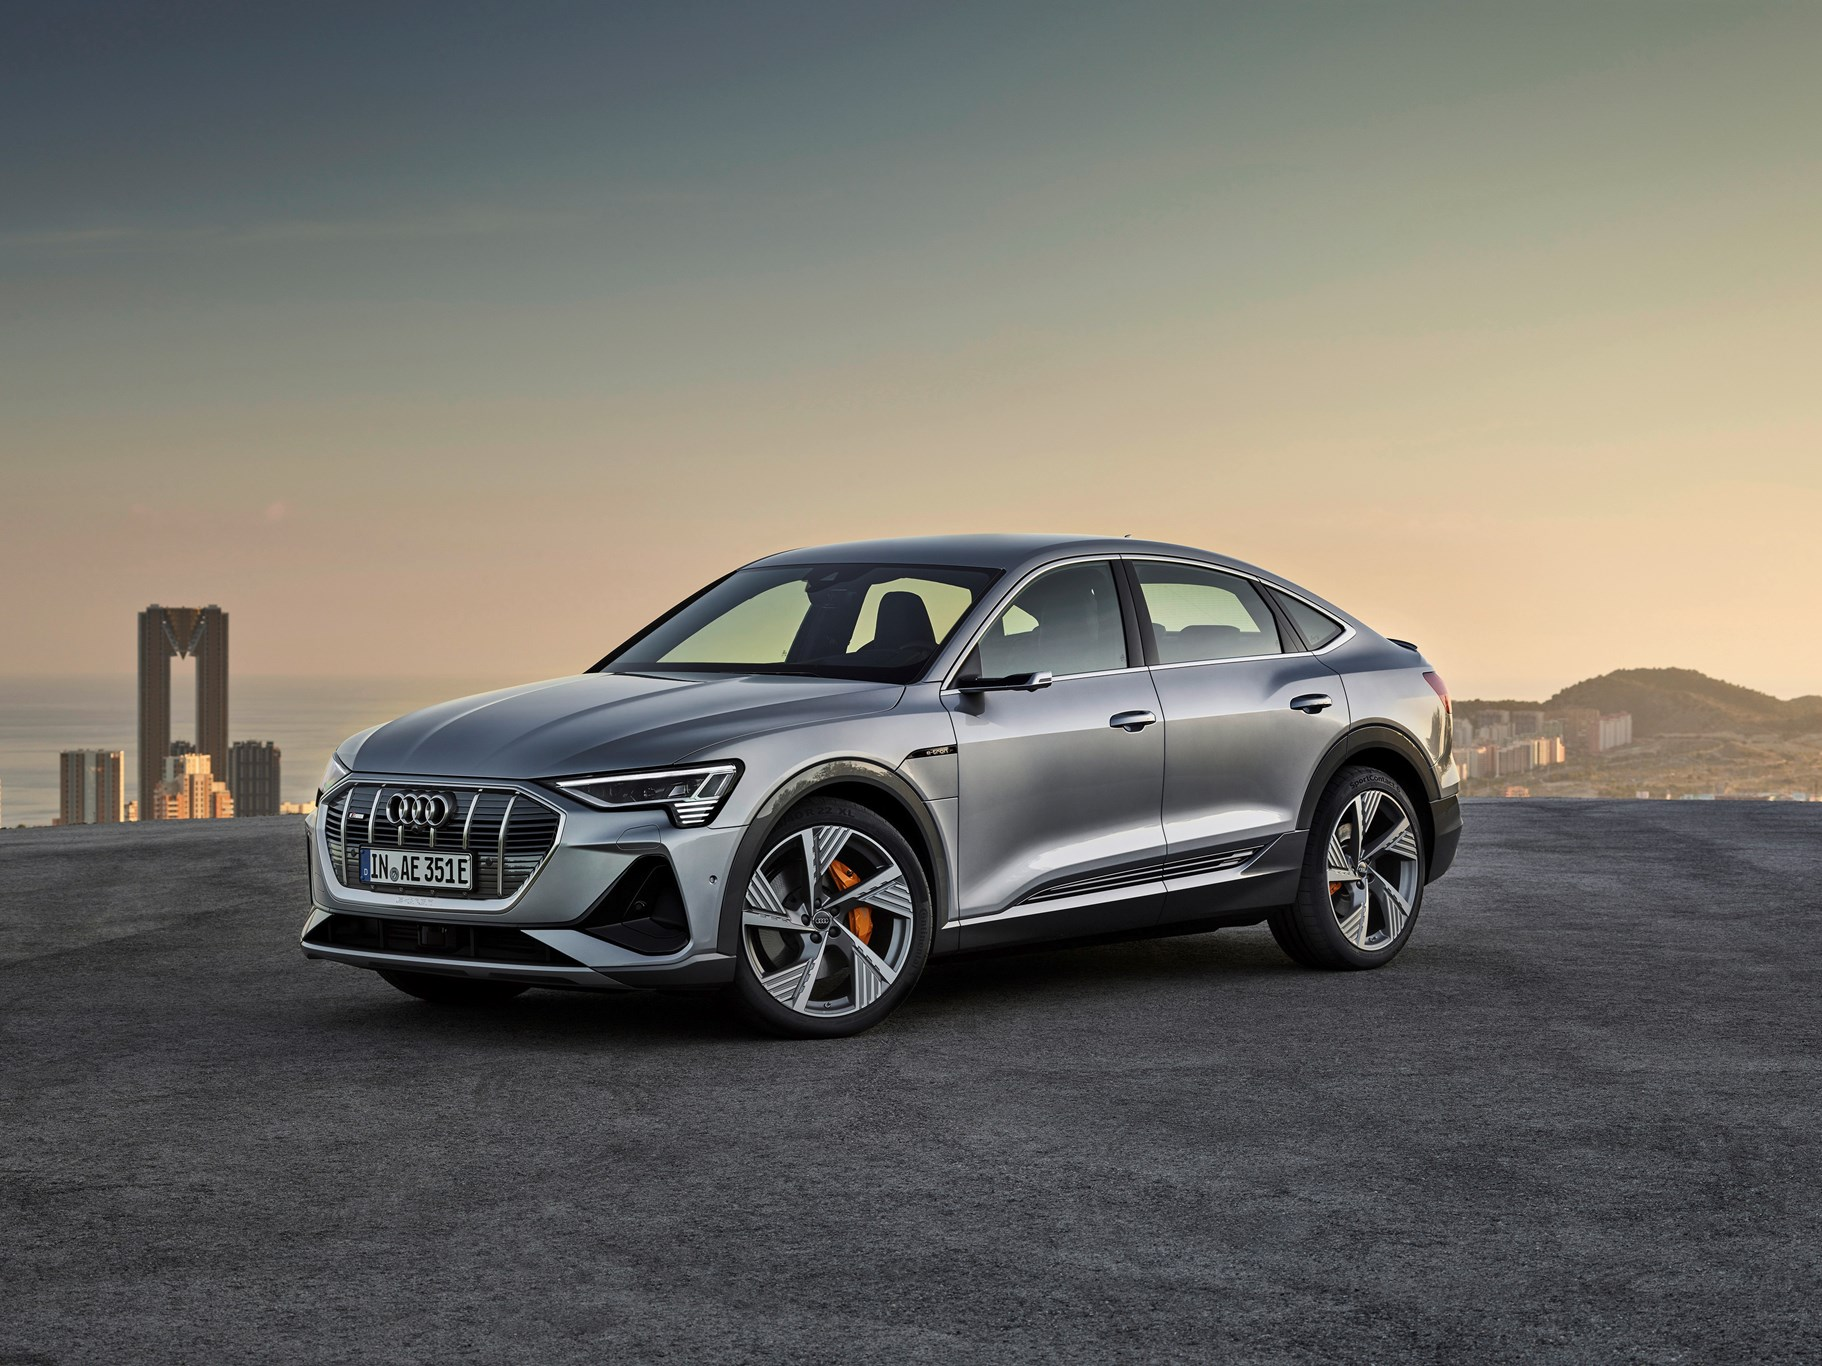 Audi unveils E-tron Sportback - and we ride in it